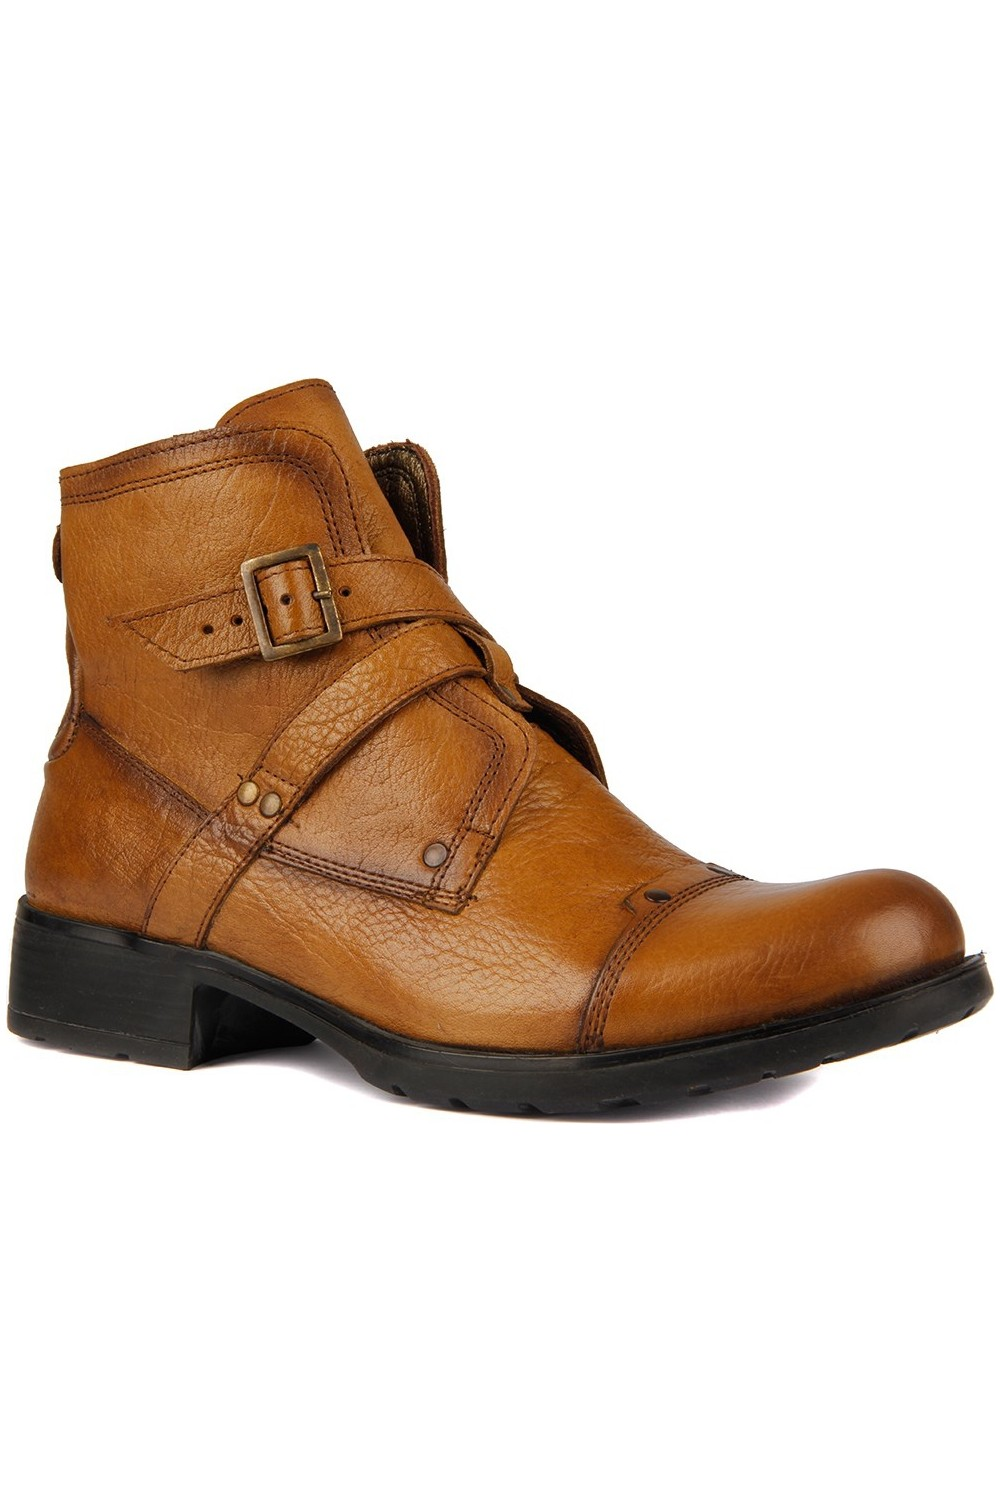 Sail Laker's Men's Boots